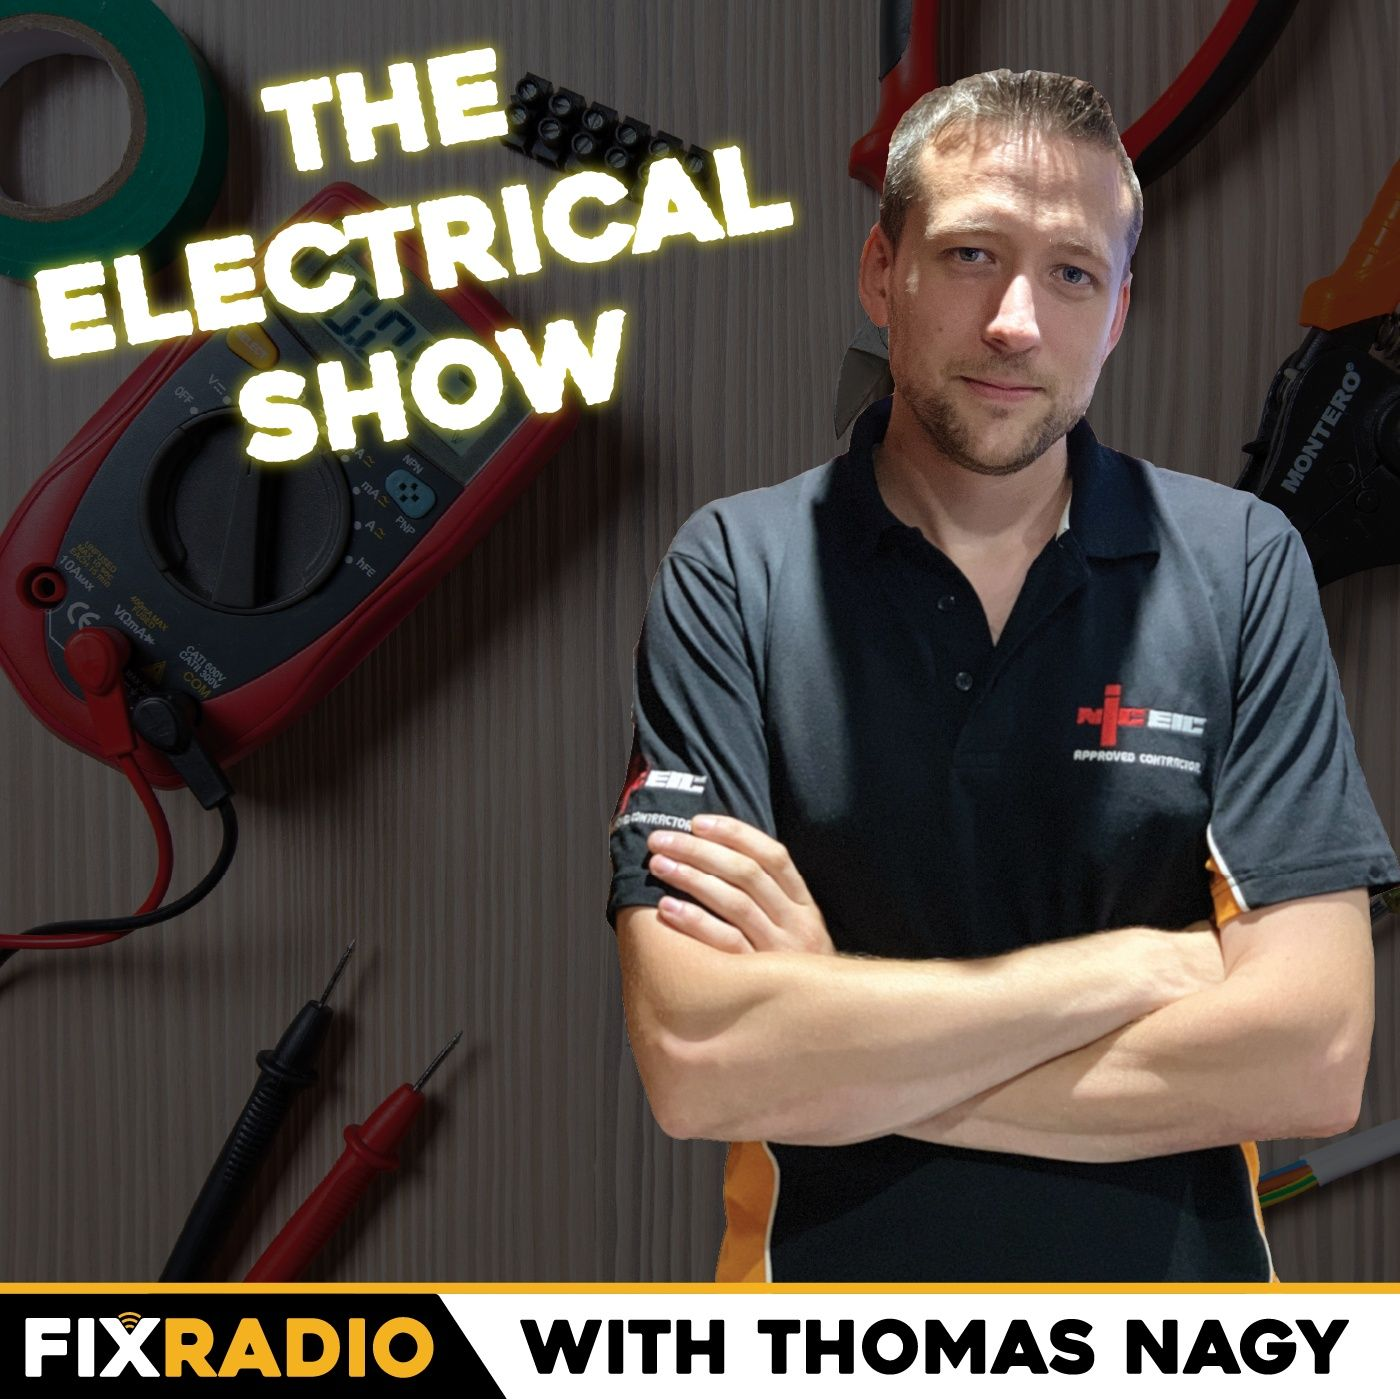 The Electrical Show